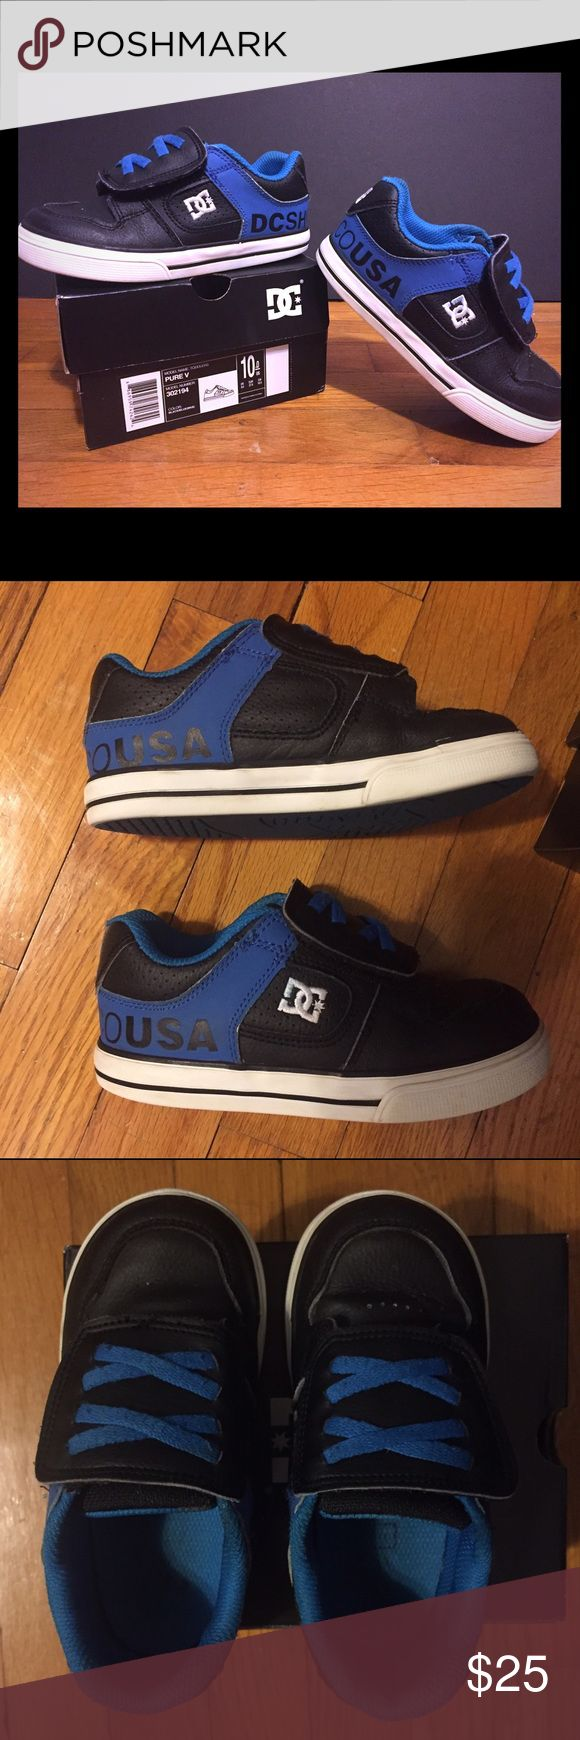 DC Shoe Co., Pure V style skater shoes! These DC shoe company skater style shoes are absolutely too cute! They have been worn very little and look like new condition! They are size 10 toddler, Velcro closure for easy on/off for the little ones. These literally can be worn with just about anything! I also have some adorable black leather rocker/biker jackets for sale that would look perfect with these! Bought these online for $50. Comes with the original box as well. DC Shoes Sneakers